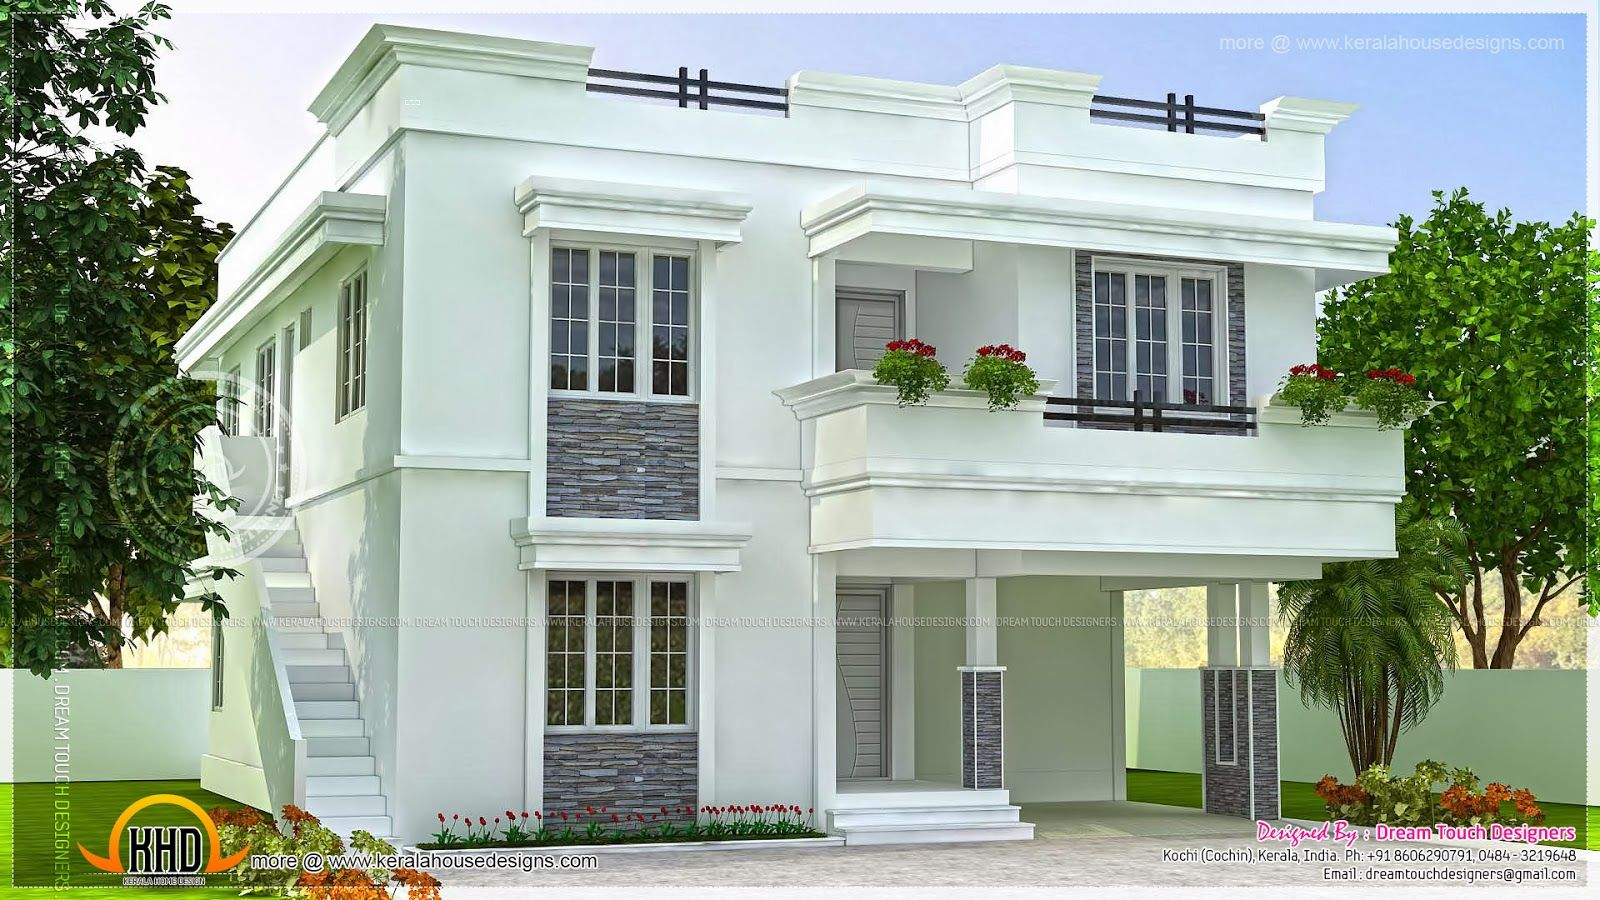 Modern beautiful home modern beautiful home design indian for House plans with photos of interior and exterior